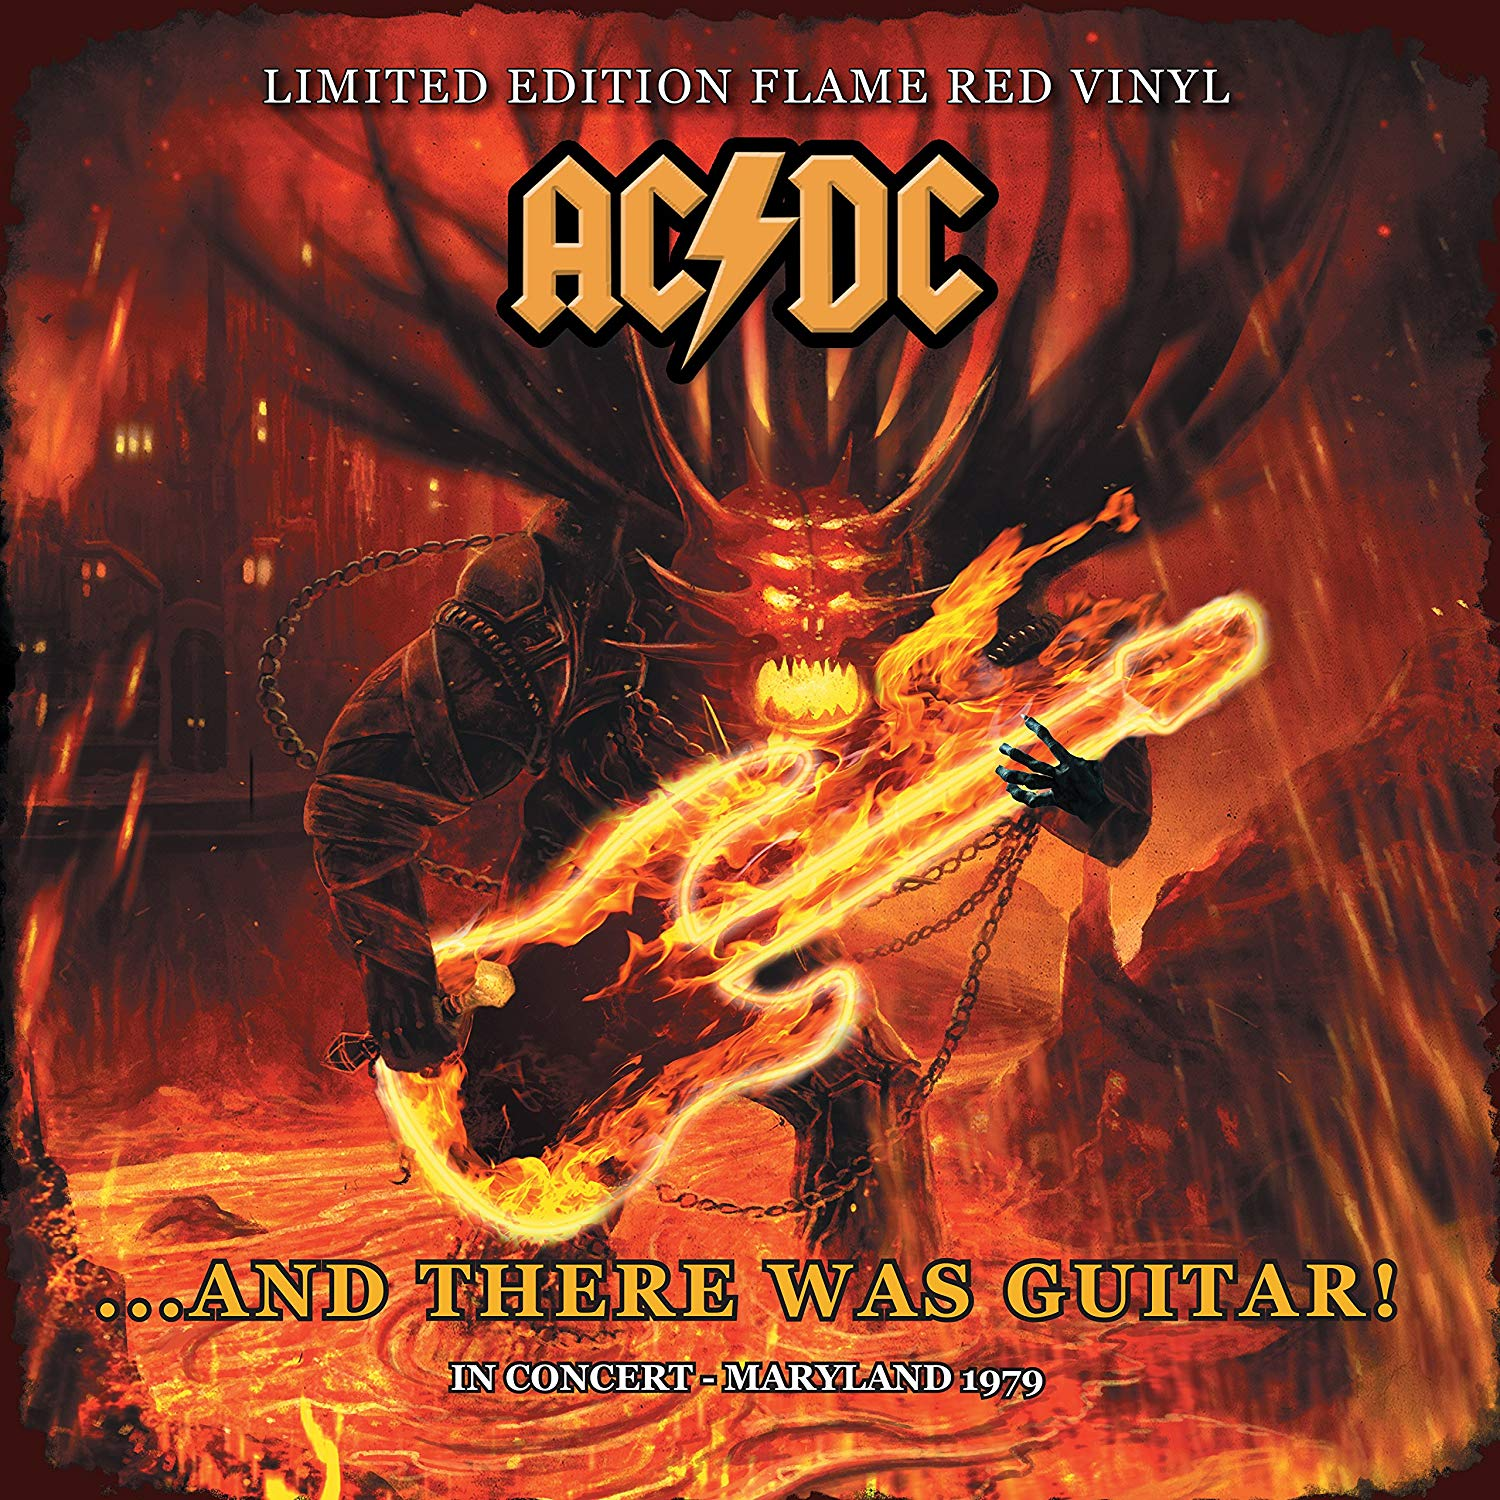 AC DC  ...And There Was Guitar!: In Concert - Maryland 1979 (Limited Edition Flame Red Vinyl) - Gears For Ears